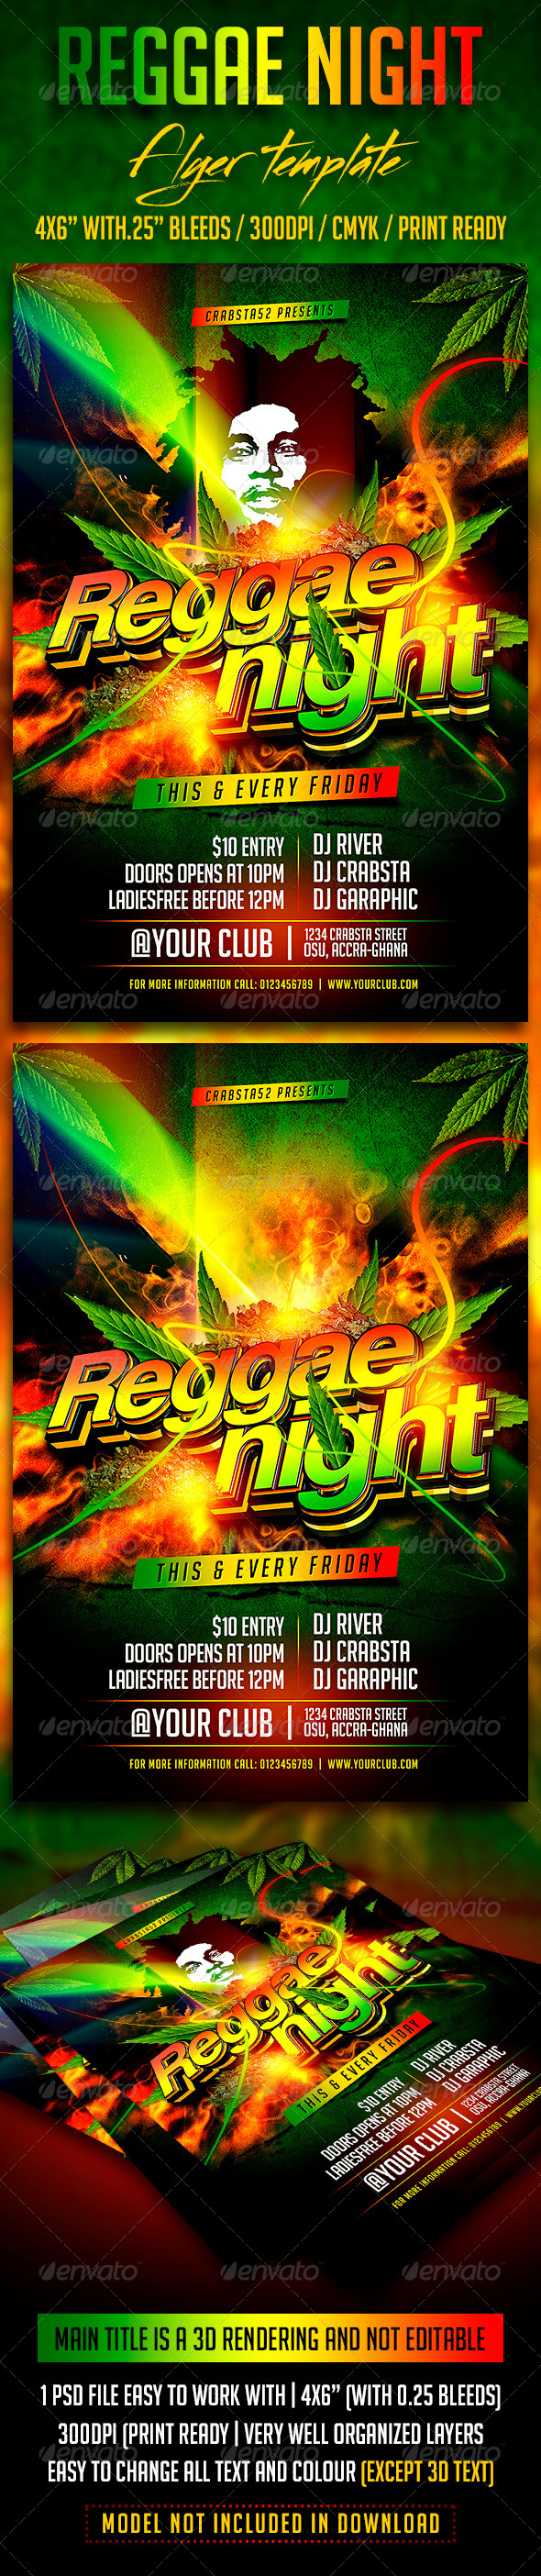 Reggae Night Flyer Template By Crabsta52 Graphicriver